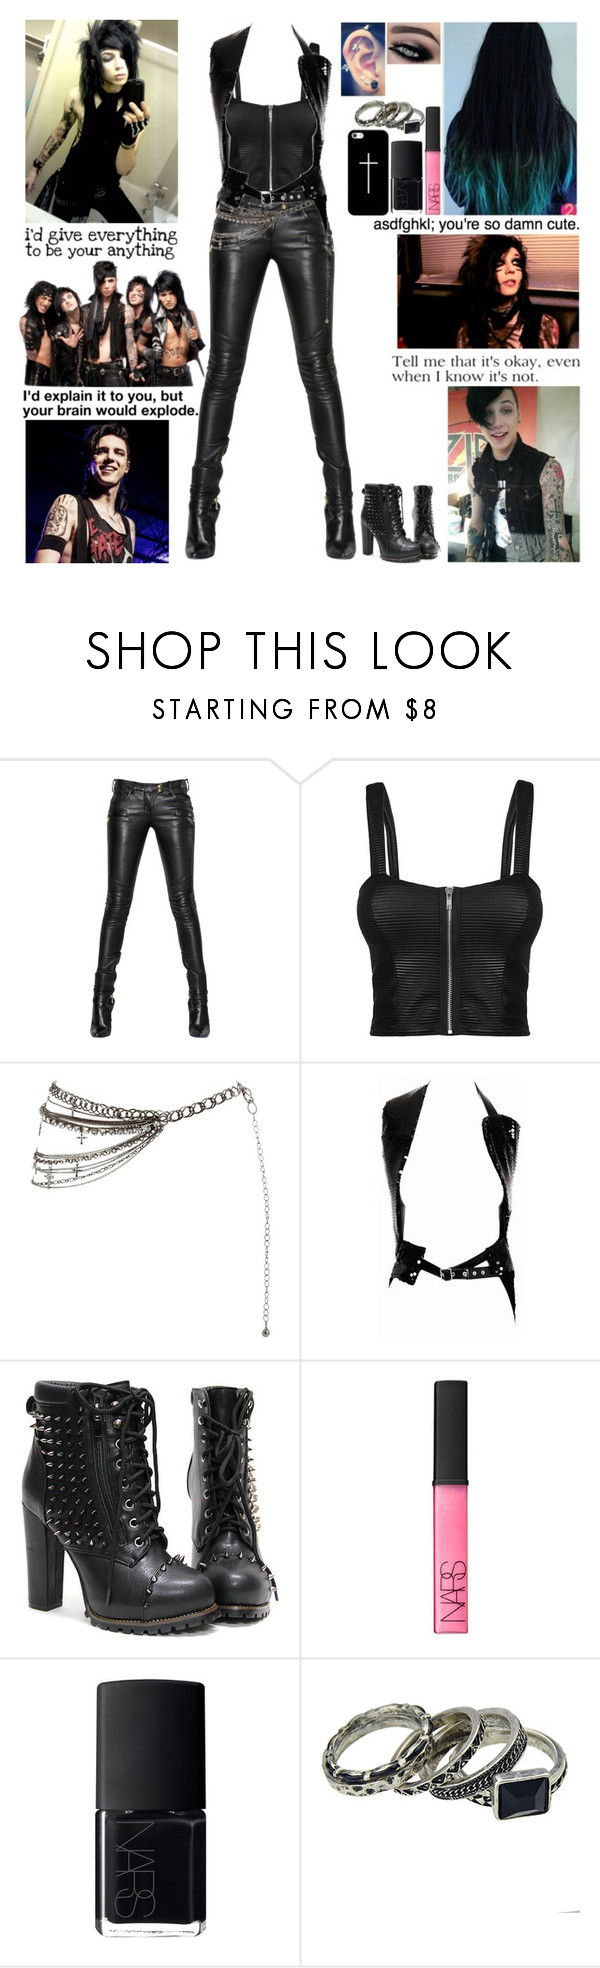 """Imagine in the D: Meeting Andy"" by blueknight ❤ liked on Polyvore featuring moda, Balmain, Cameo Rose, Comme des Garçons, NARS Cosmetics, Casetify e aNYthing"